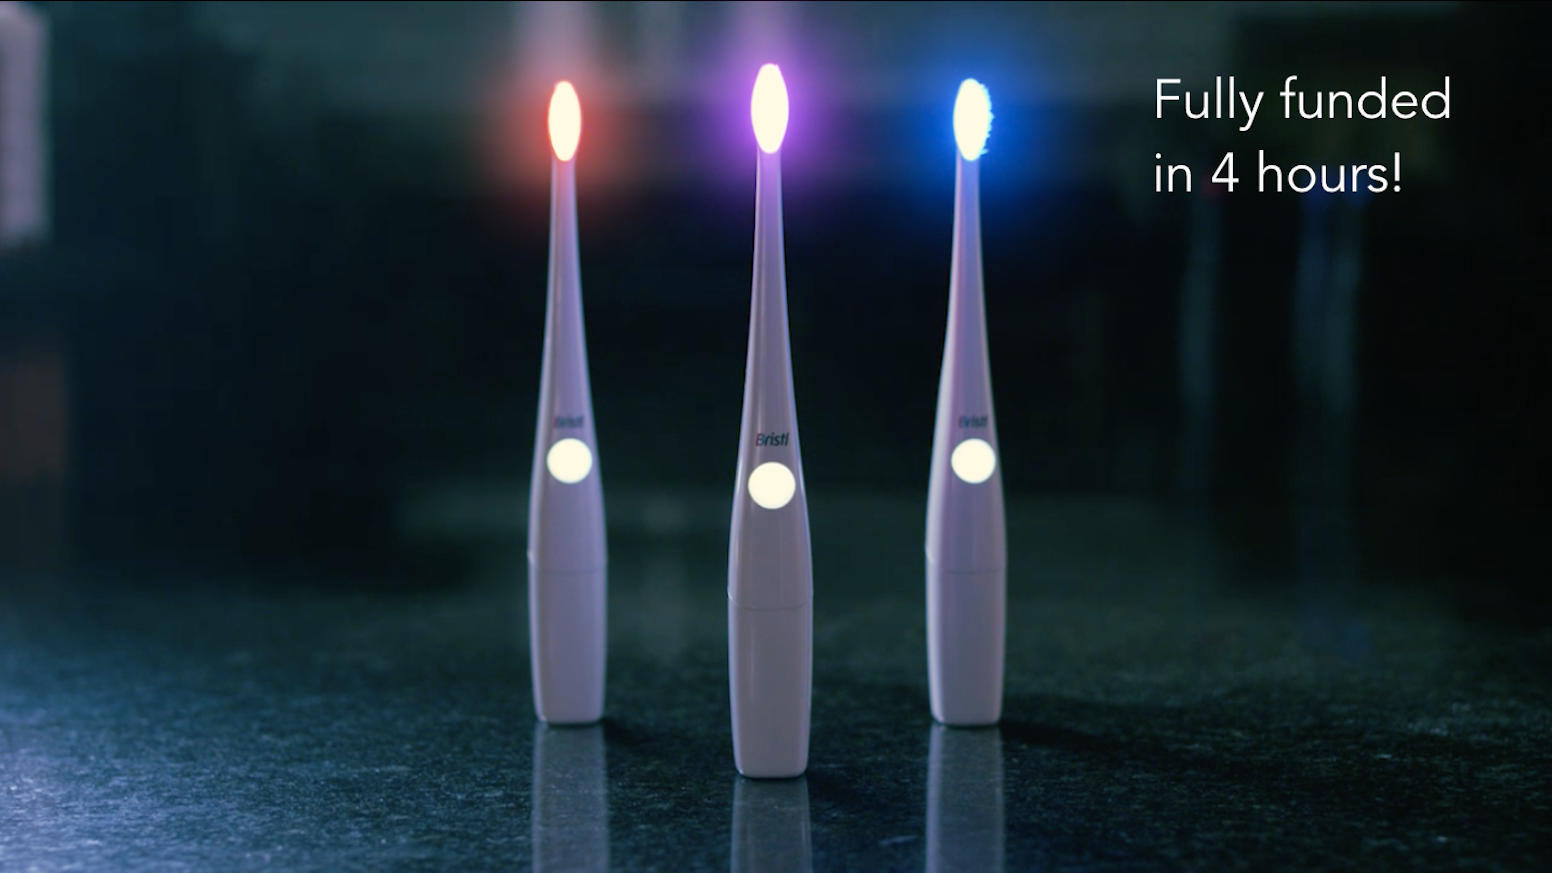 The toothbrush that combines sonic vibration and clinically validated light therapy to heal gums, kill bacteria, and whiten teeth.